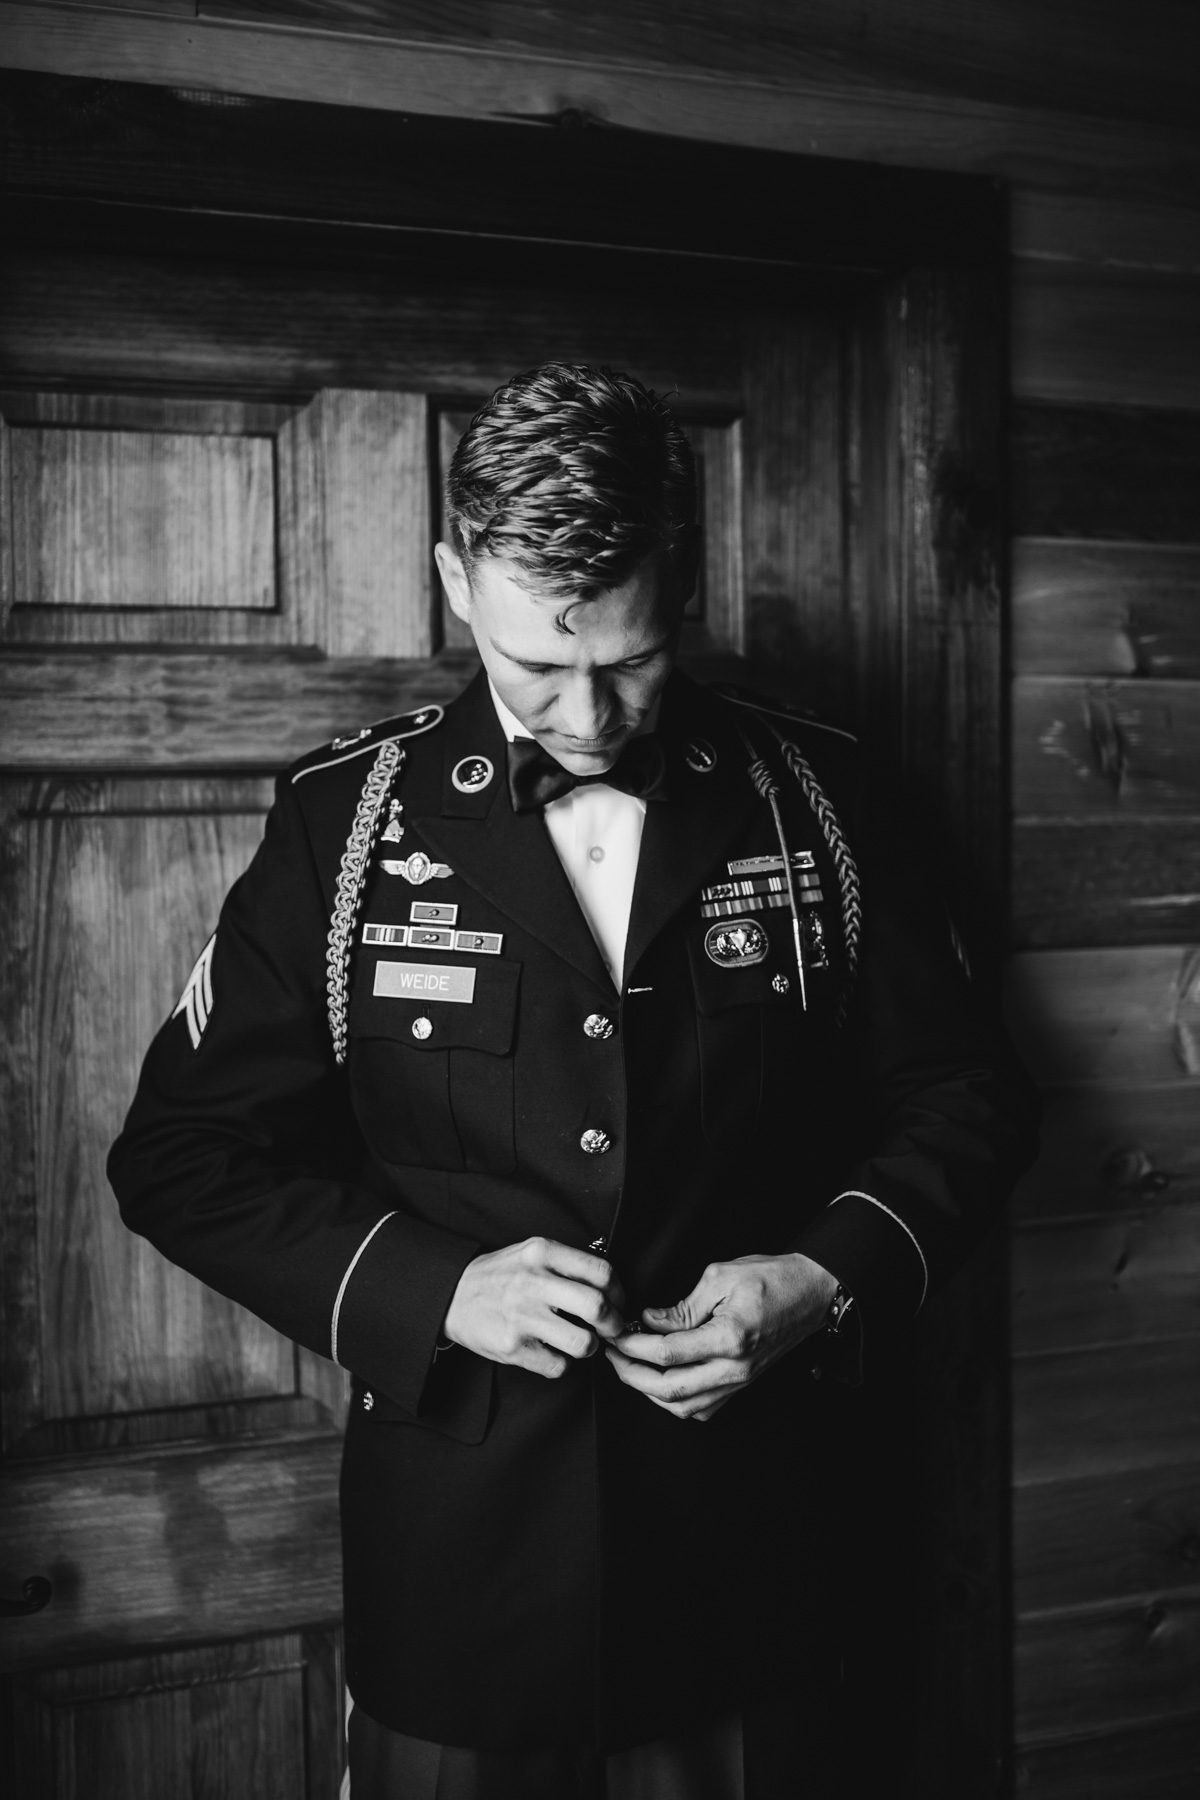 Military Groom at Millikan Farms Wedding Venue | Kayli LaFon Photography